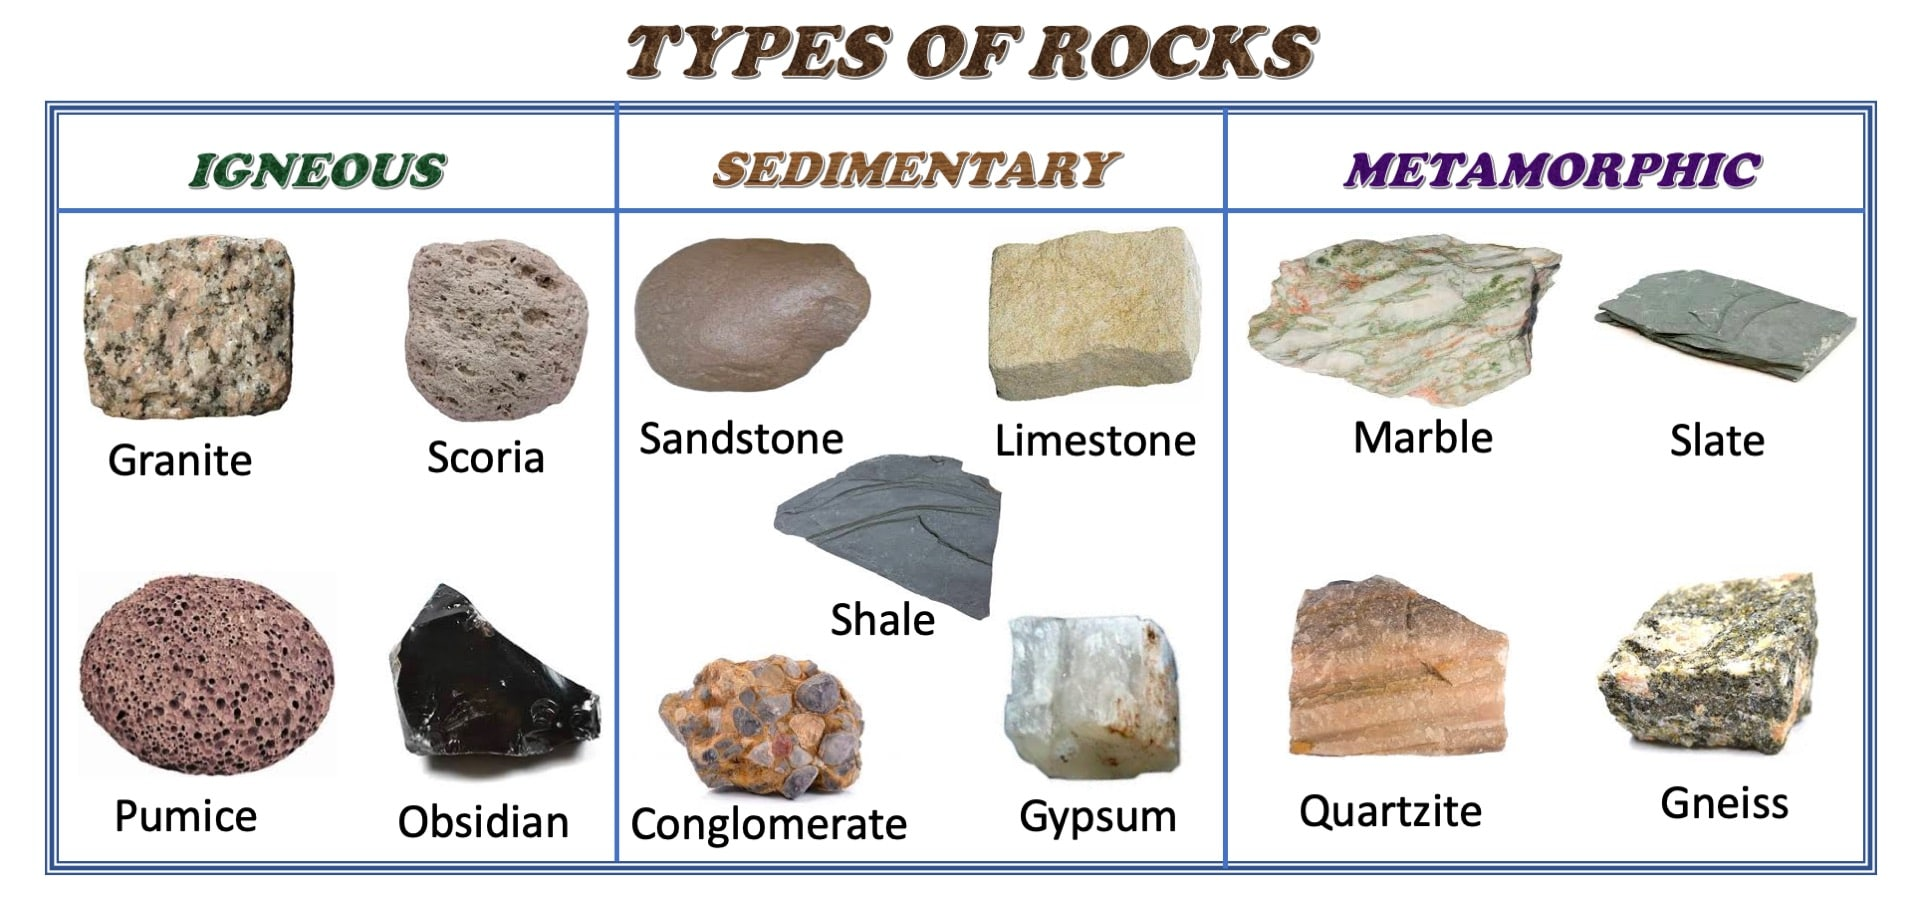 Types of Rocks - Igneous, Sedimentary & Metamorphic » Selftution